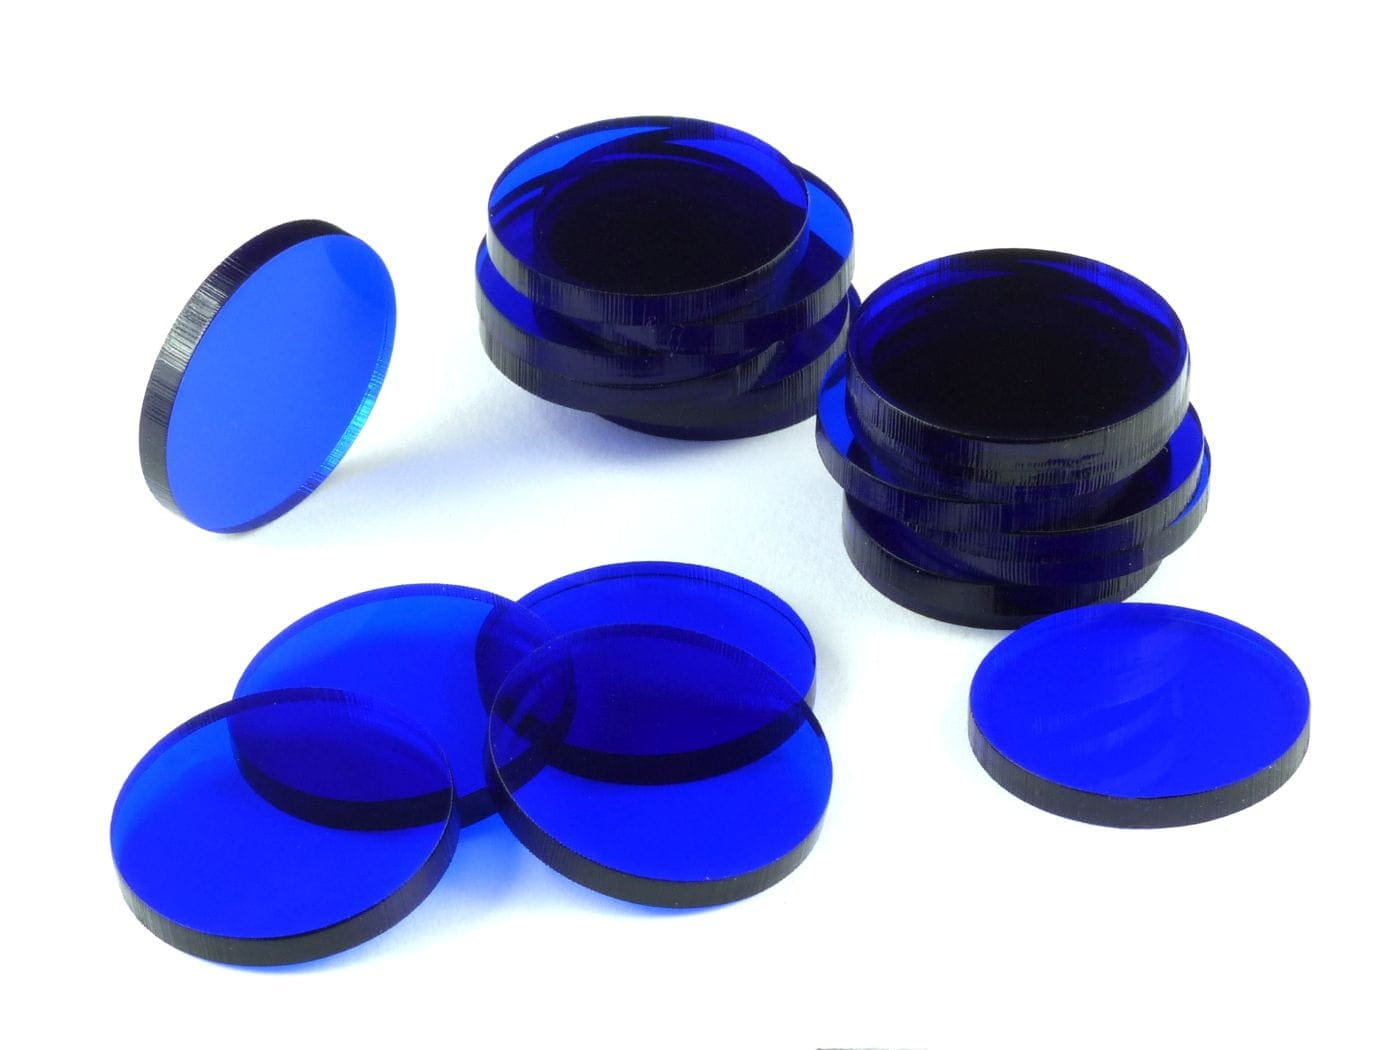 Acrylic miniature bases (20 pcs), round, clear, blue, 25 x 3 mm - 1